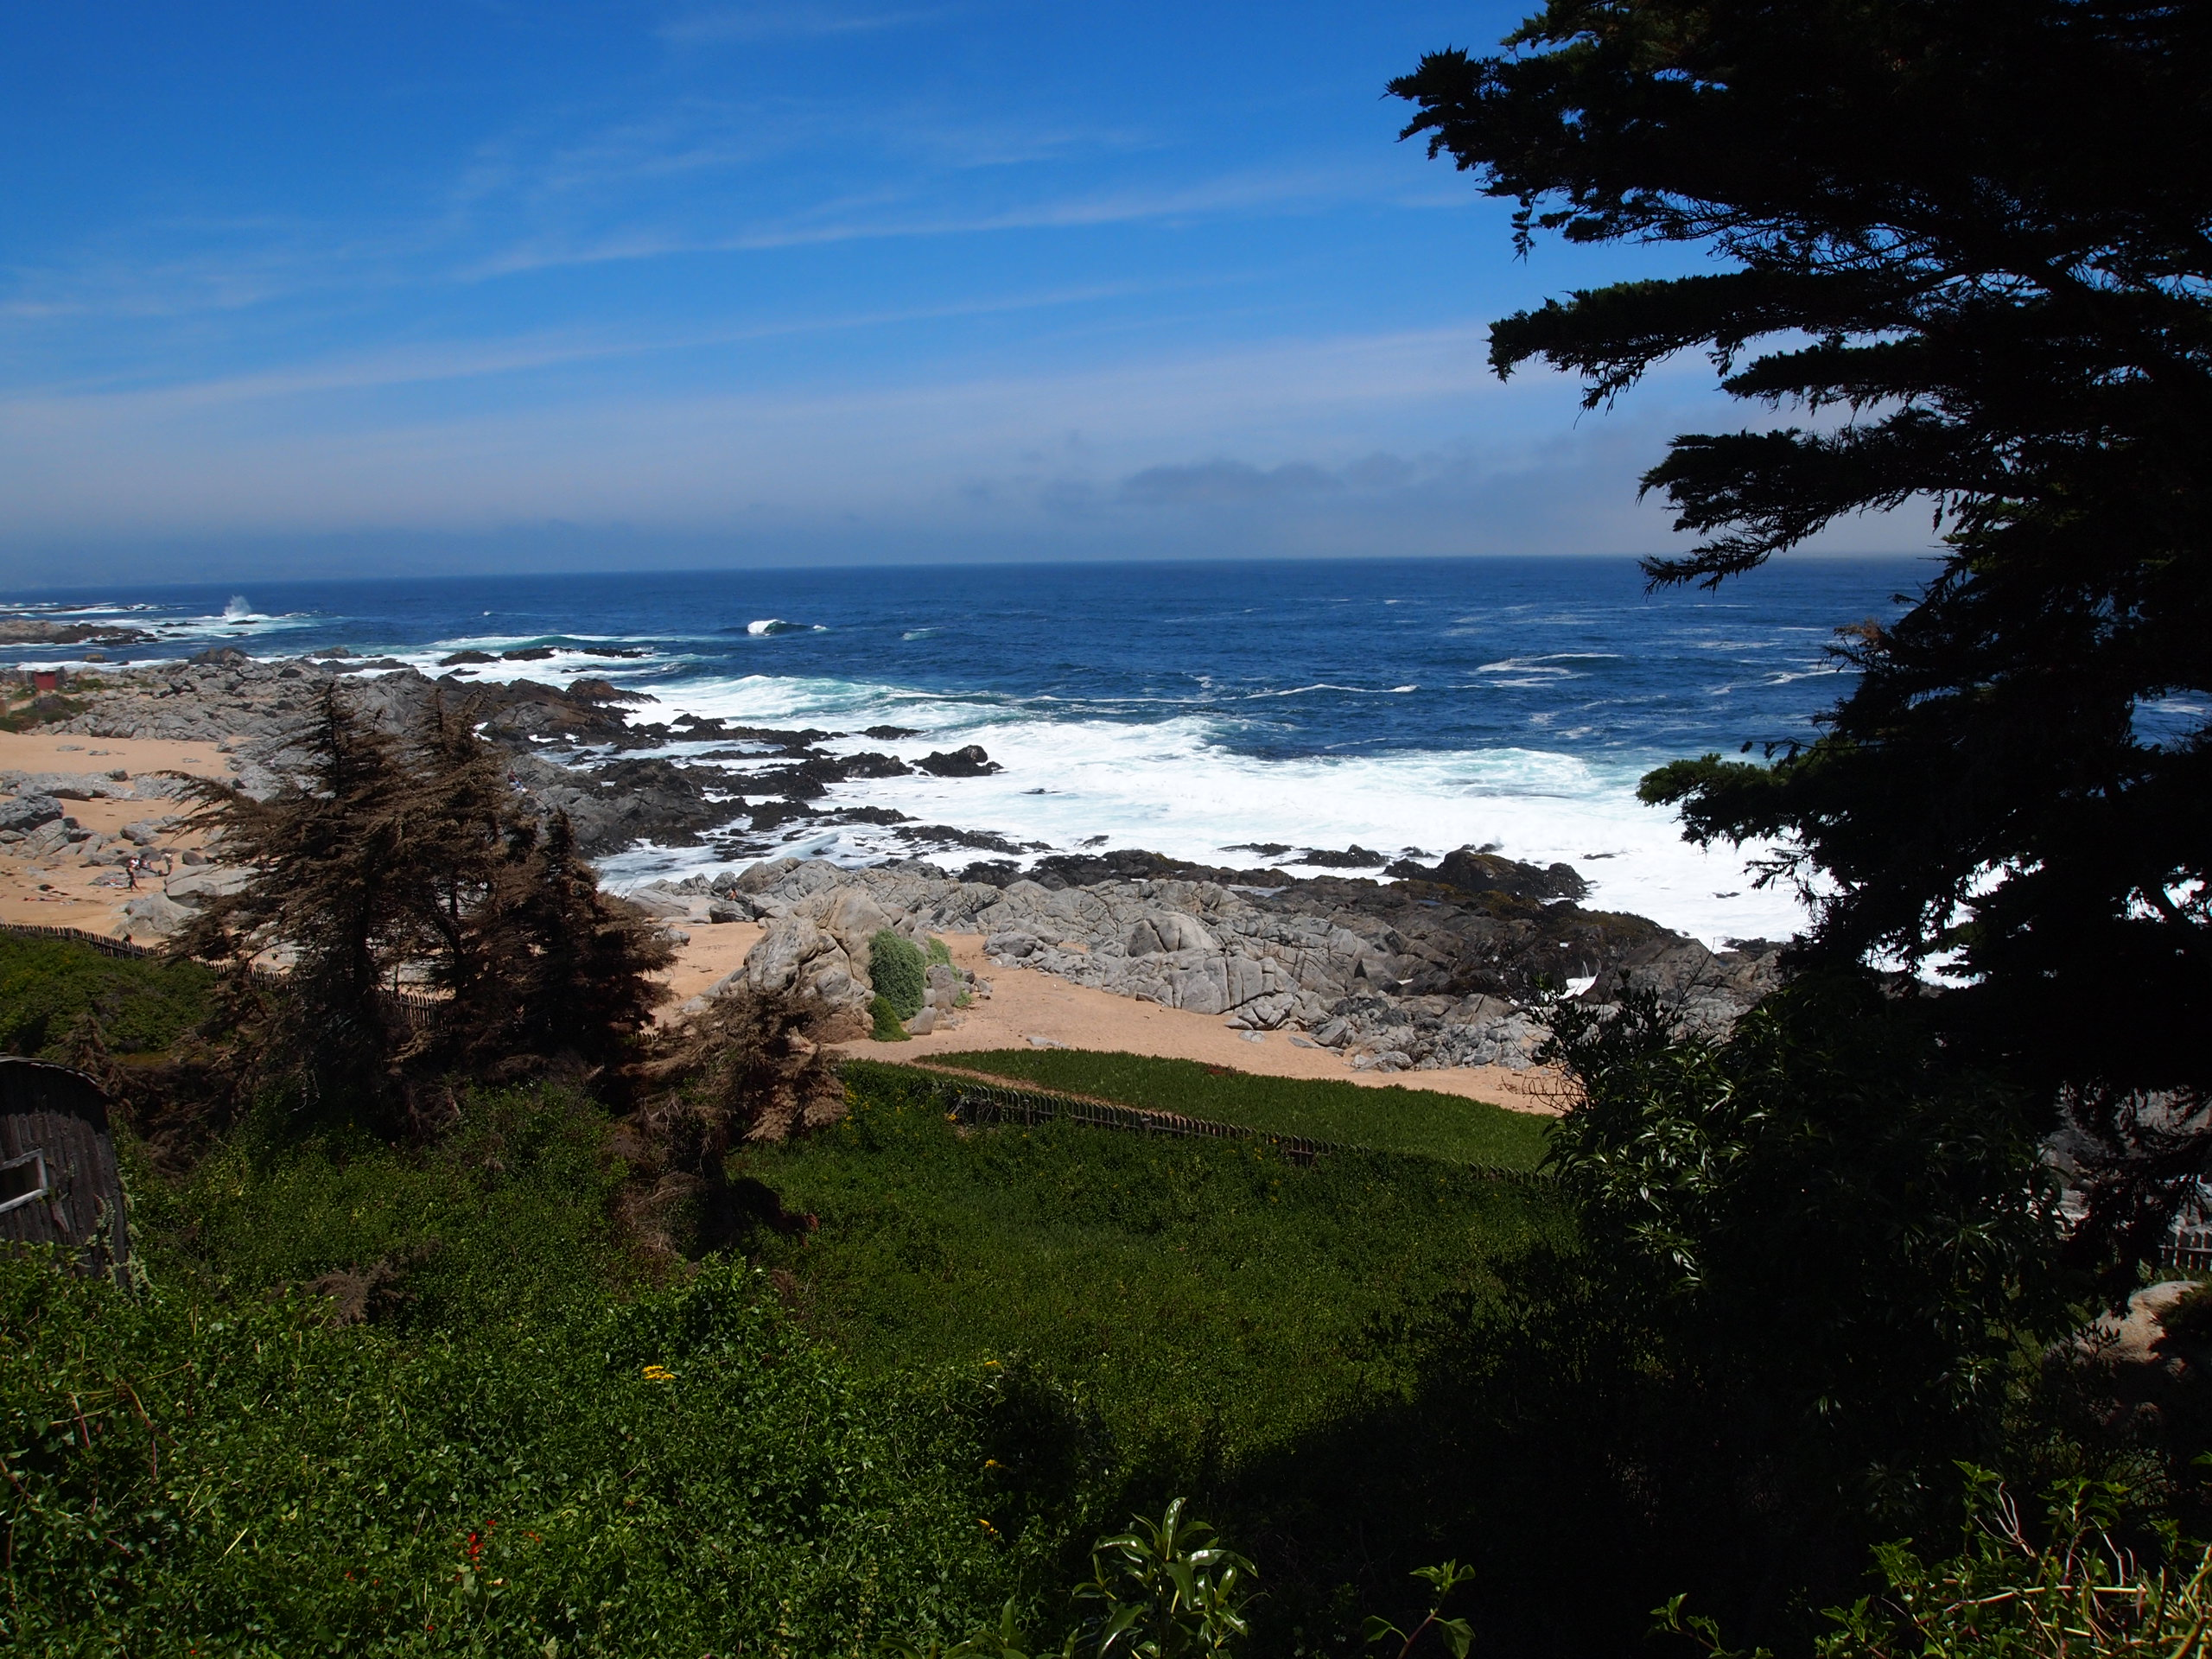 The view of the Pacific from Isla Negra, outside Pablo Neruda's house.